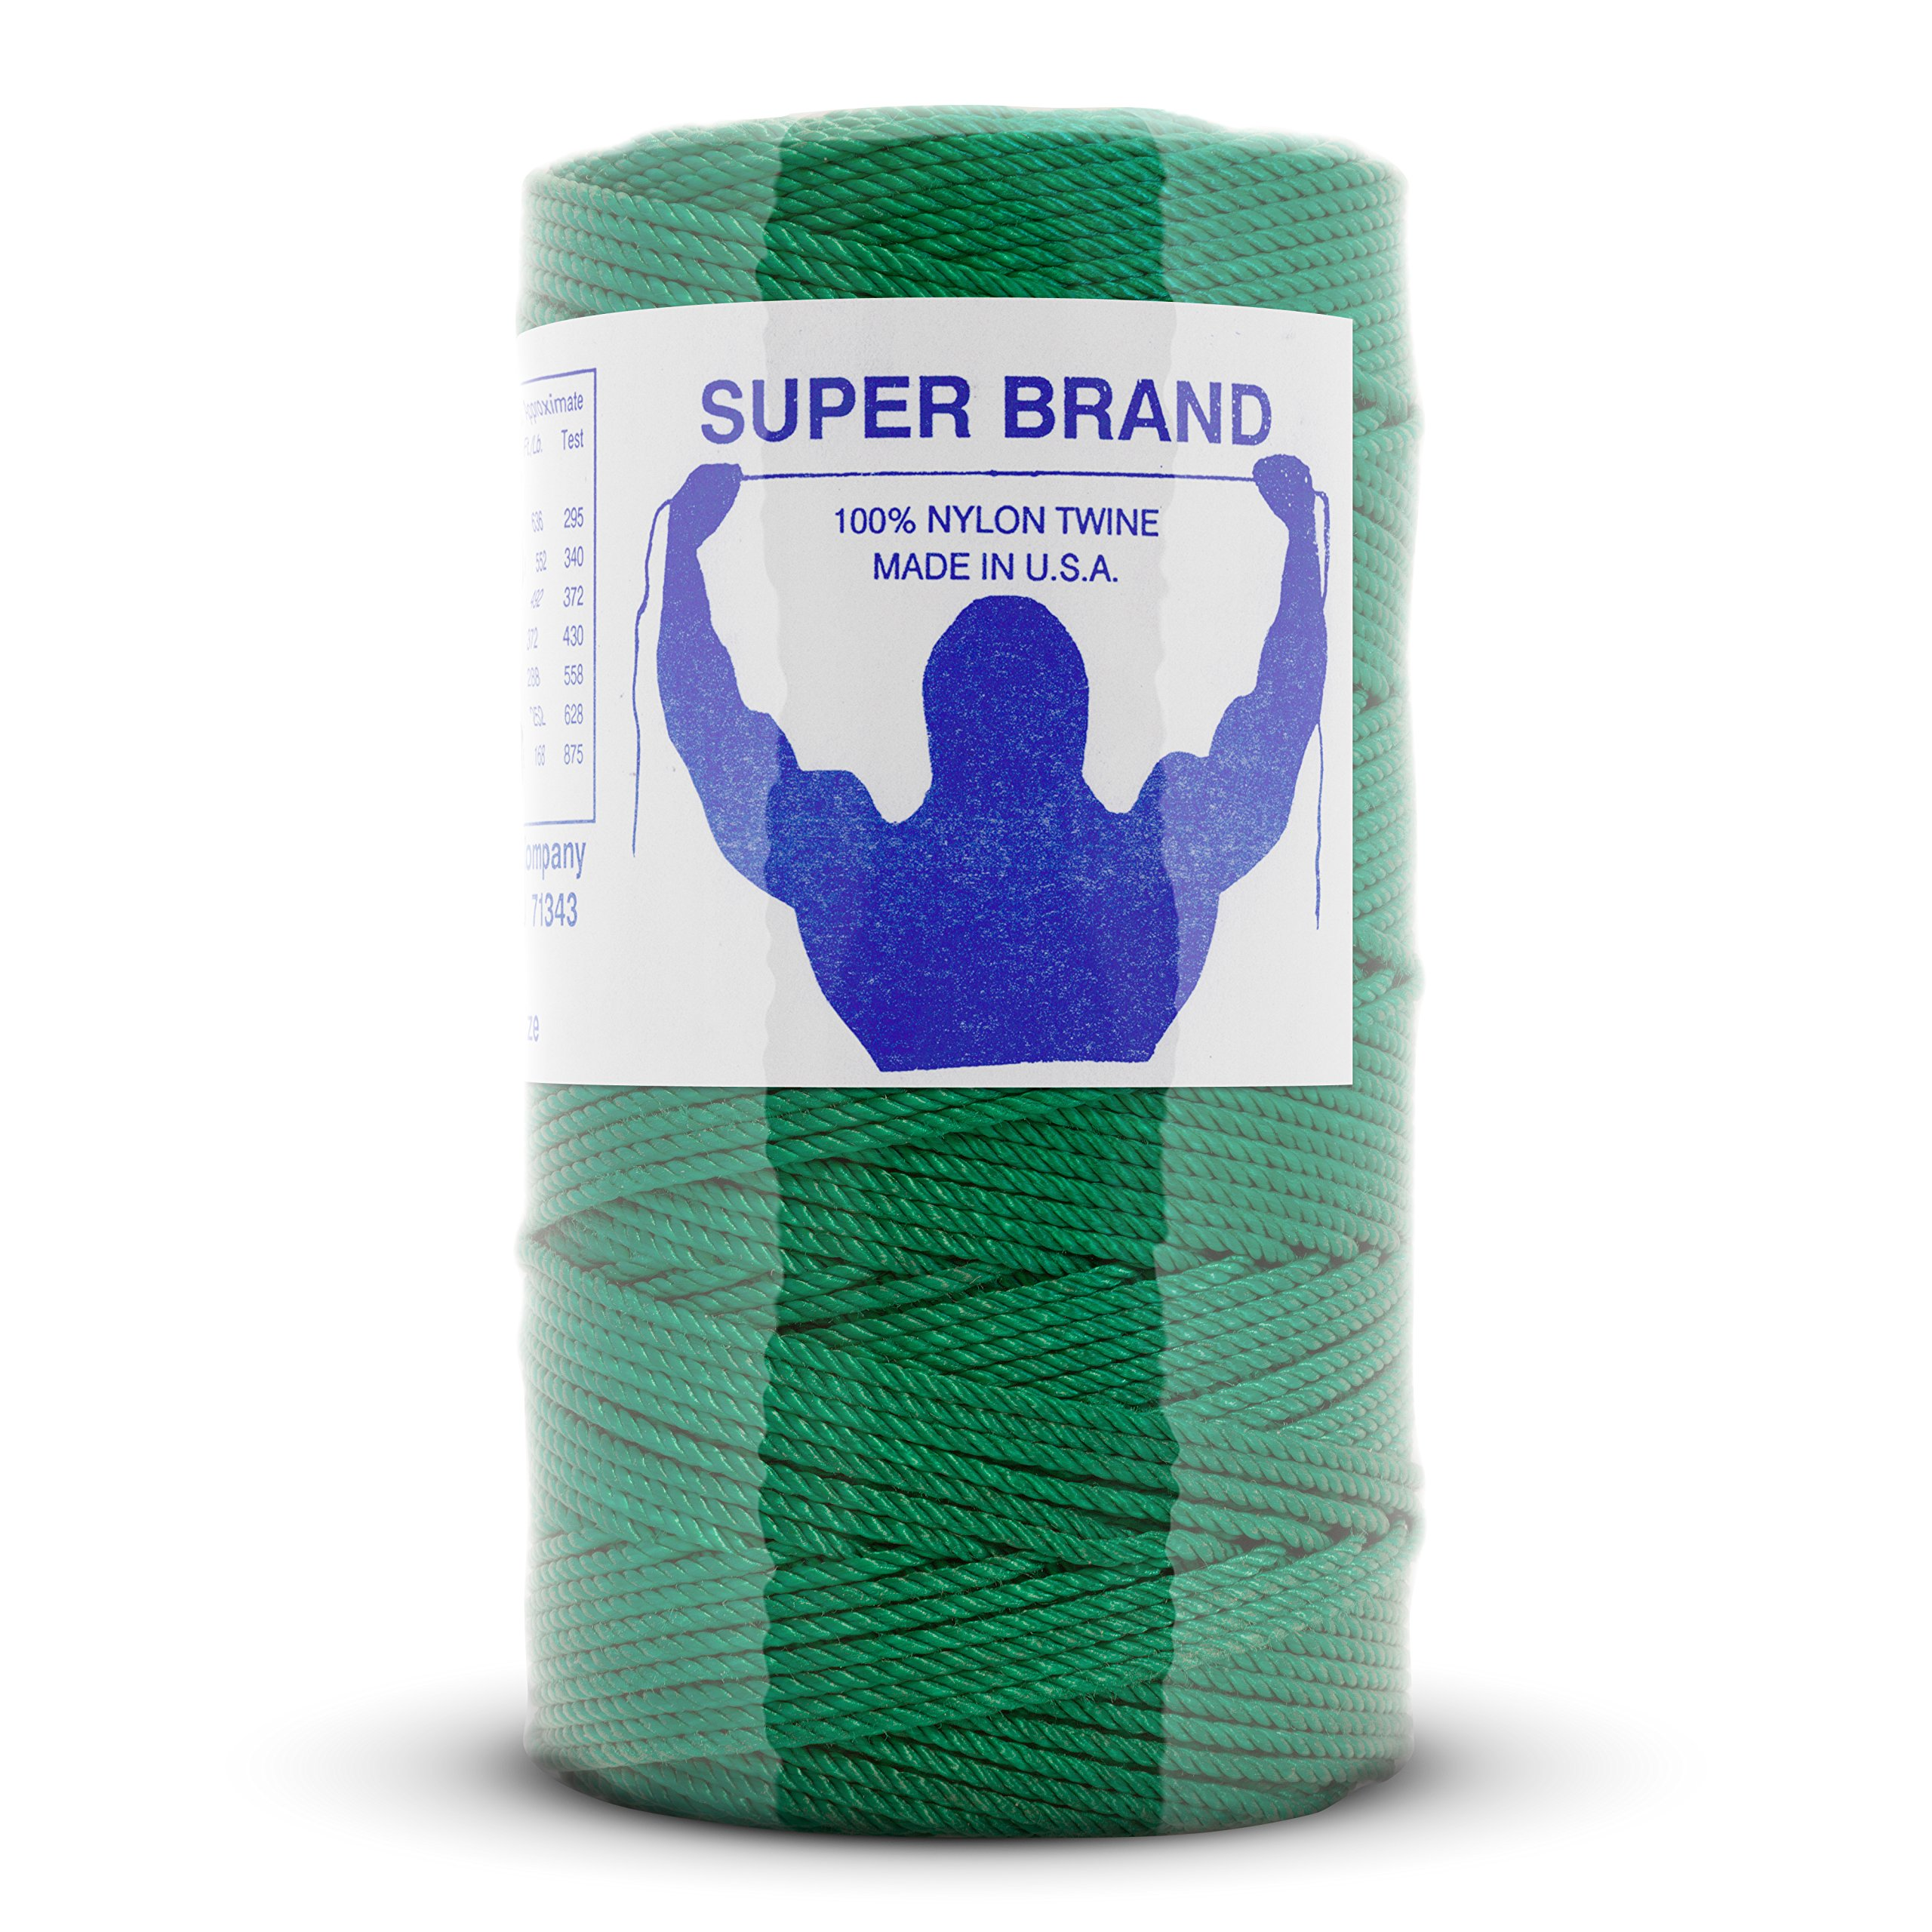 Green Nylon Twine, Twisted. Size #36, 1 lb 6-pack